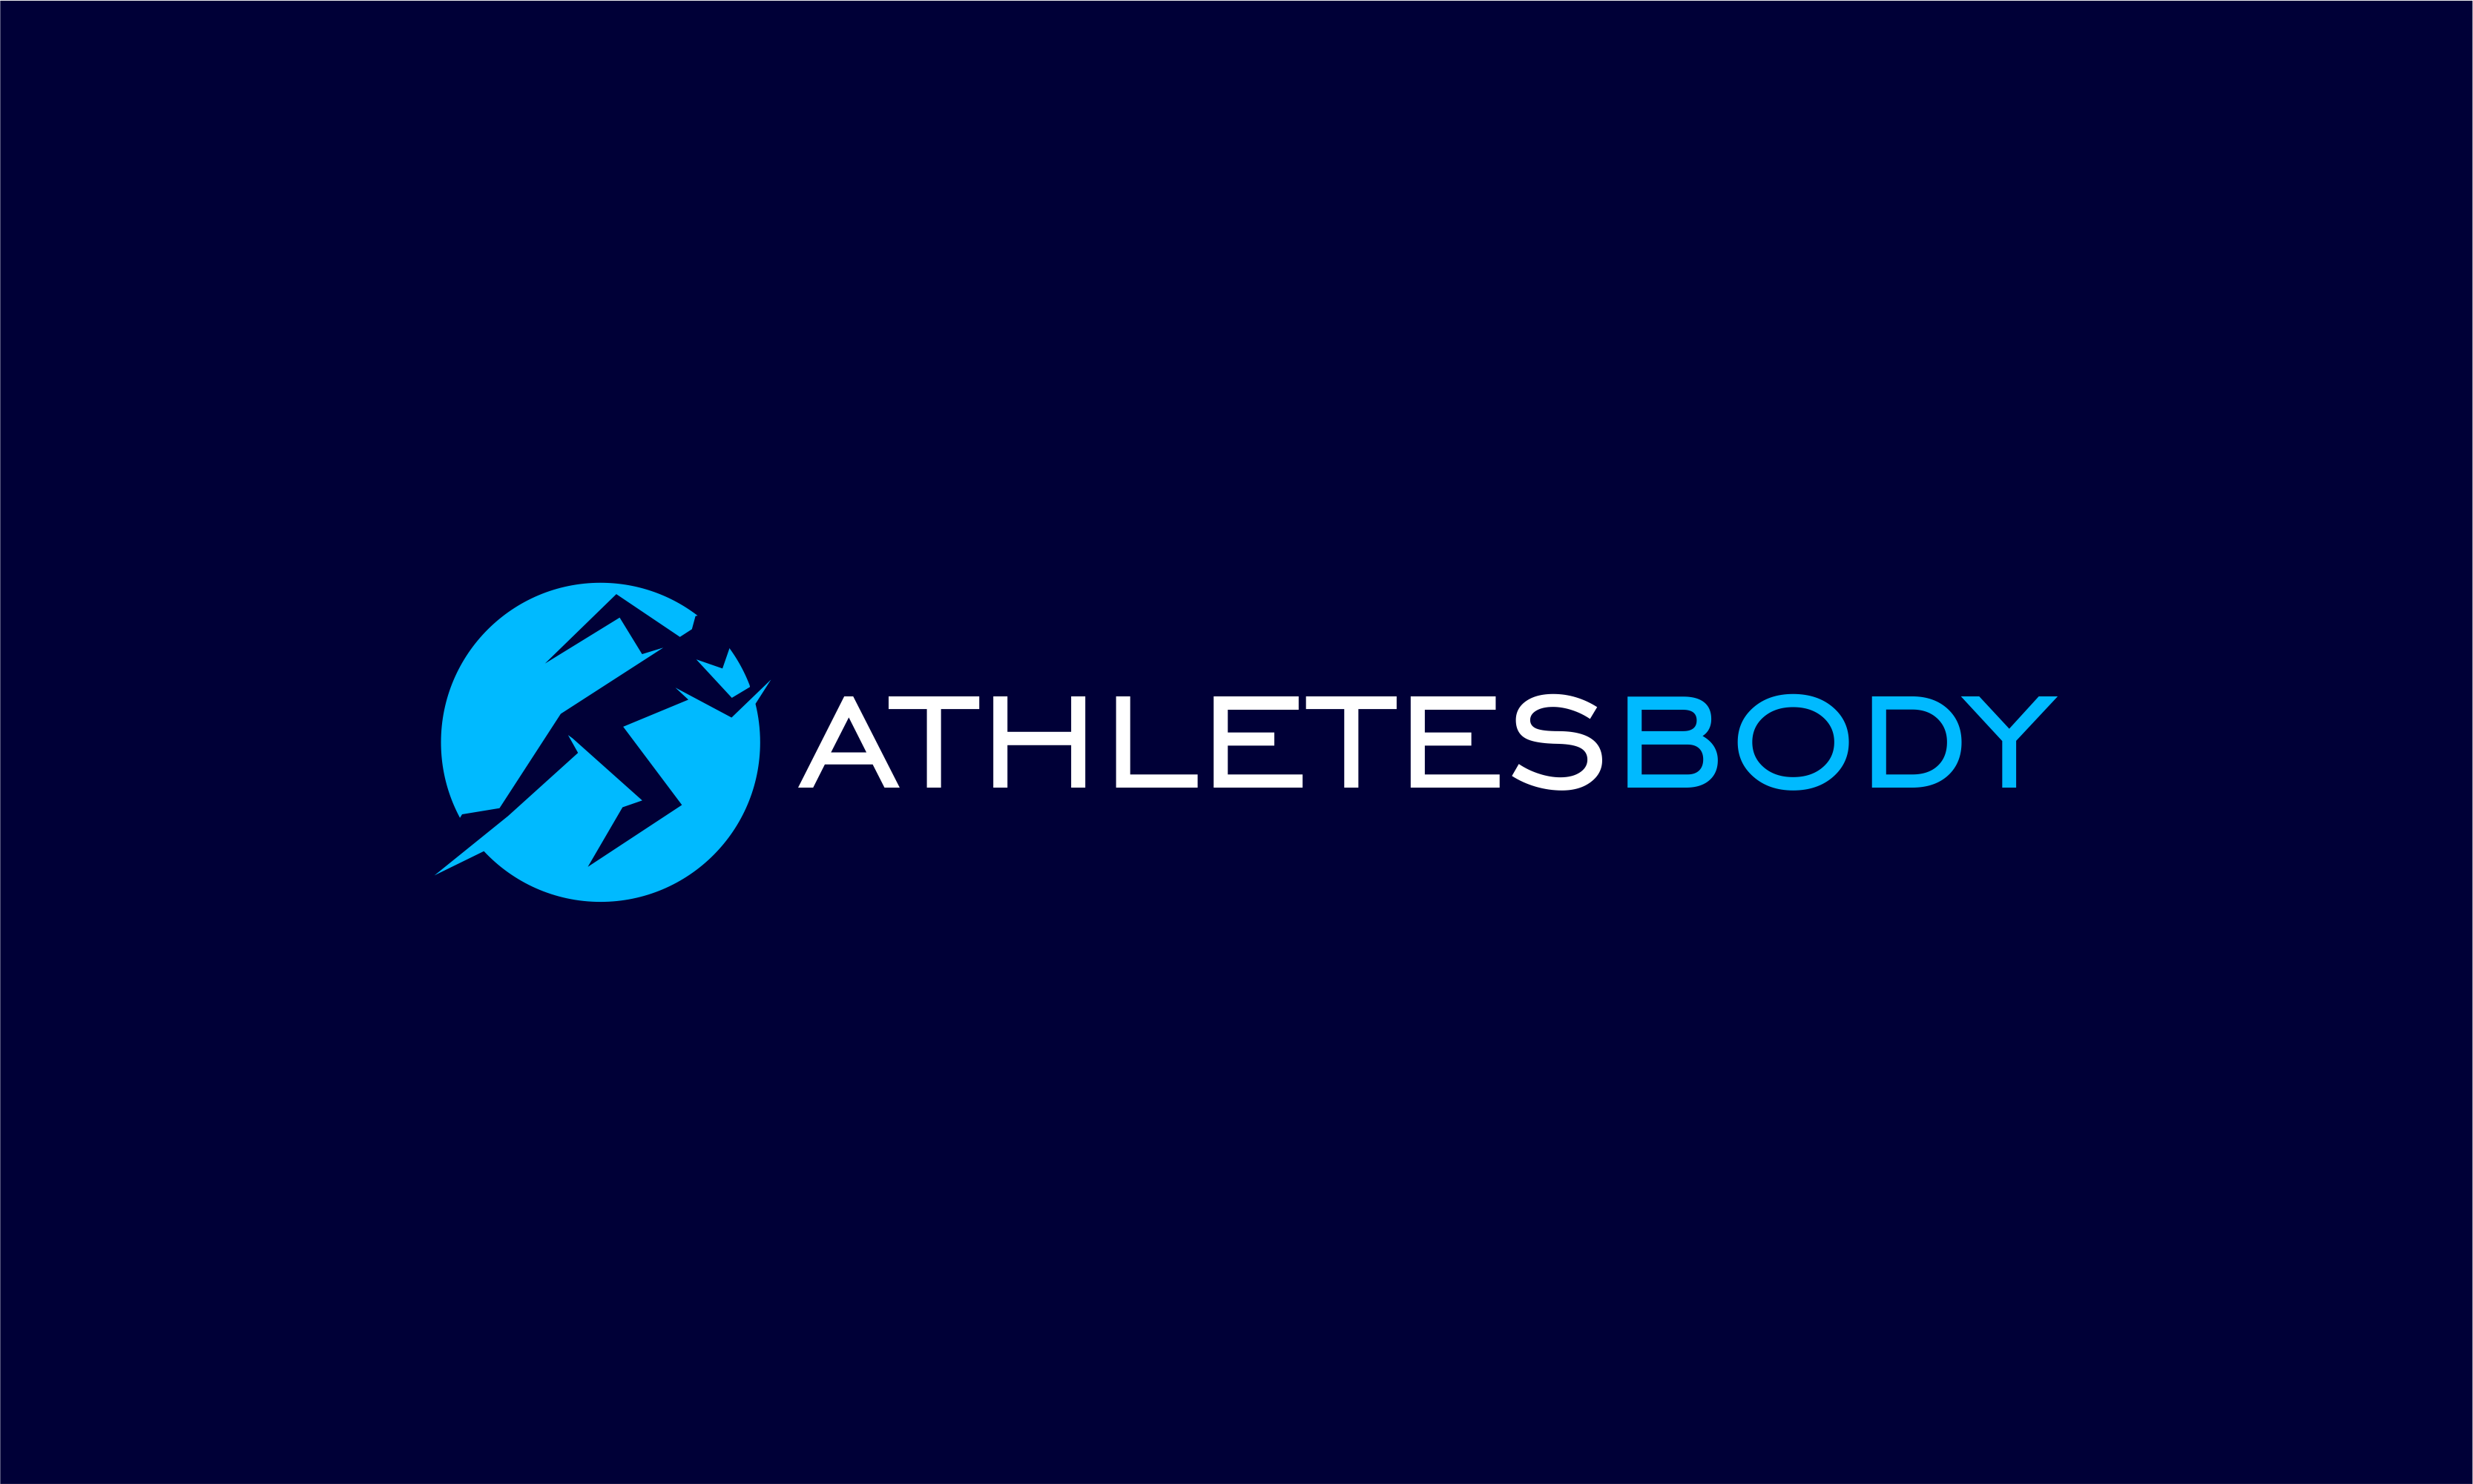 Athletesbody